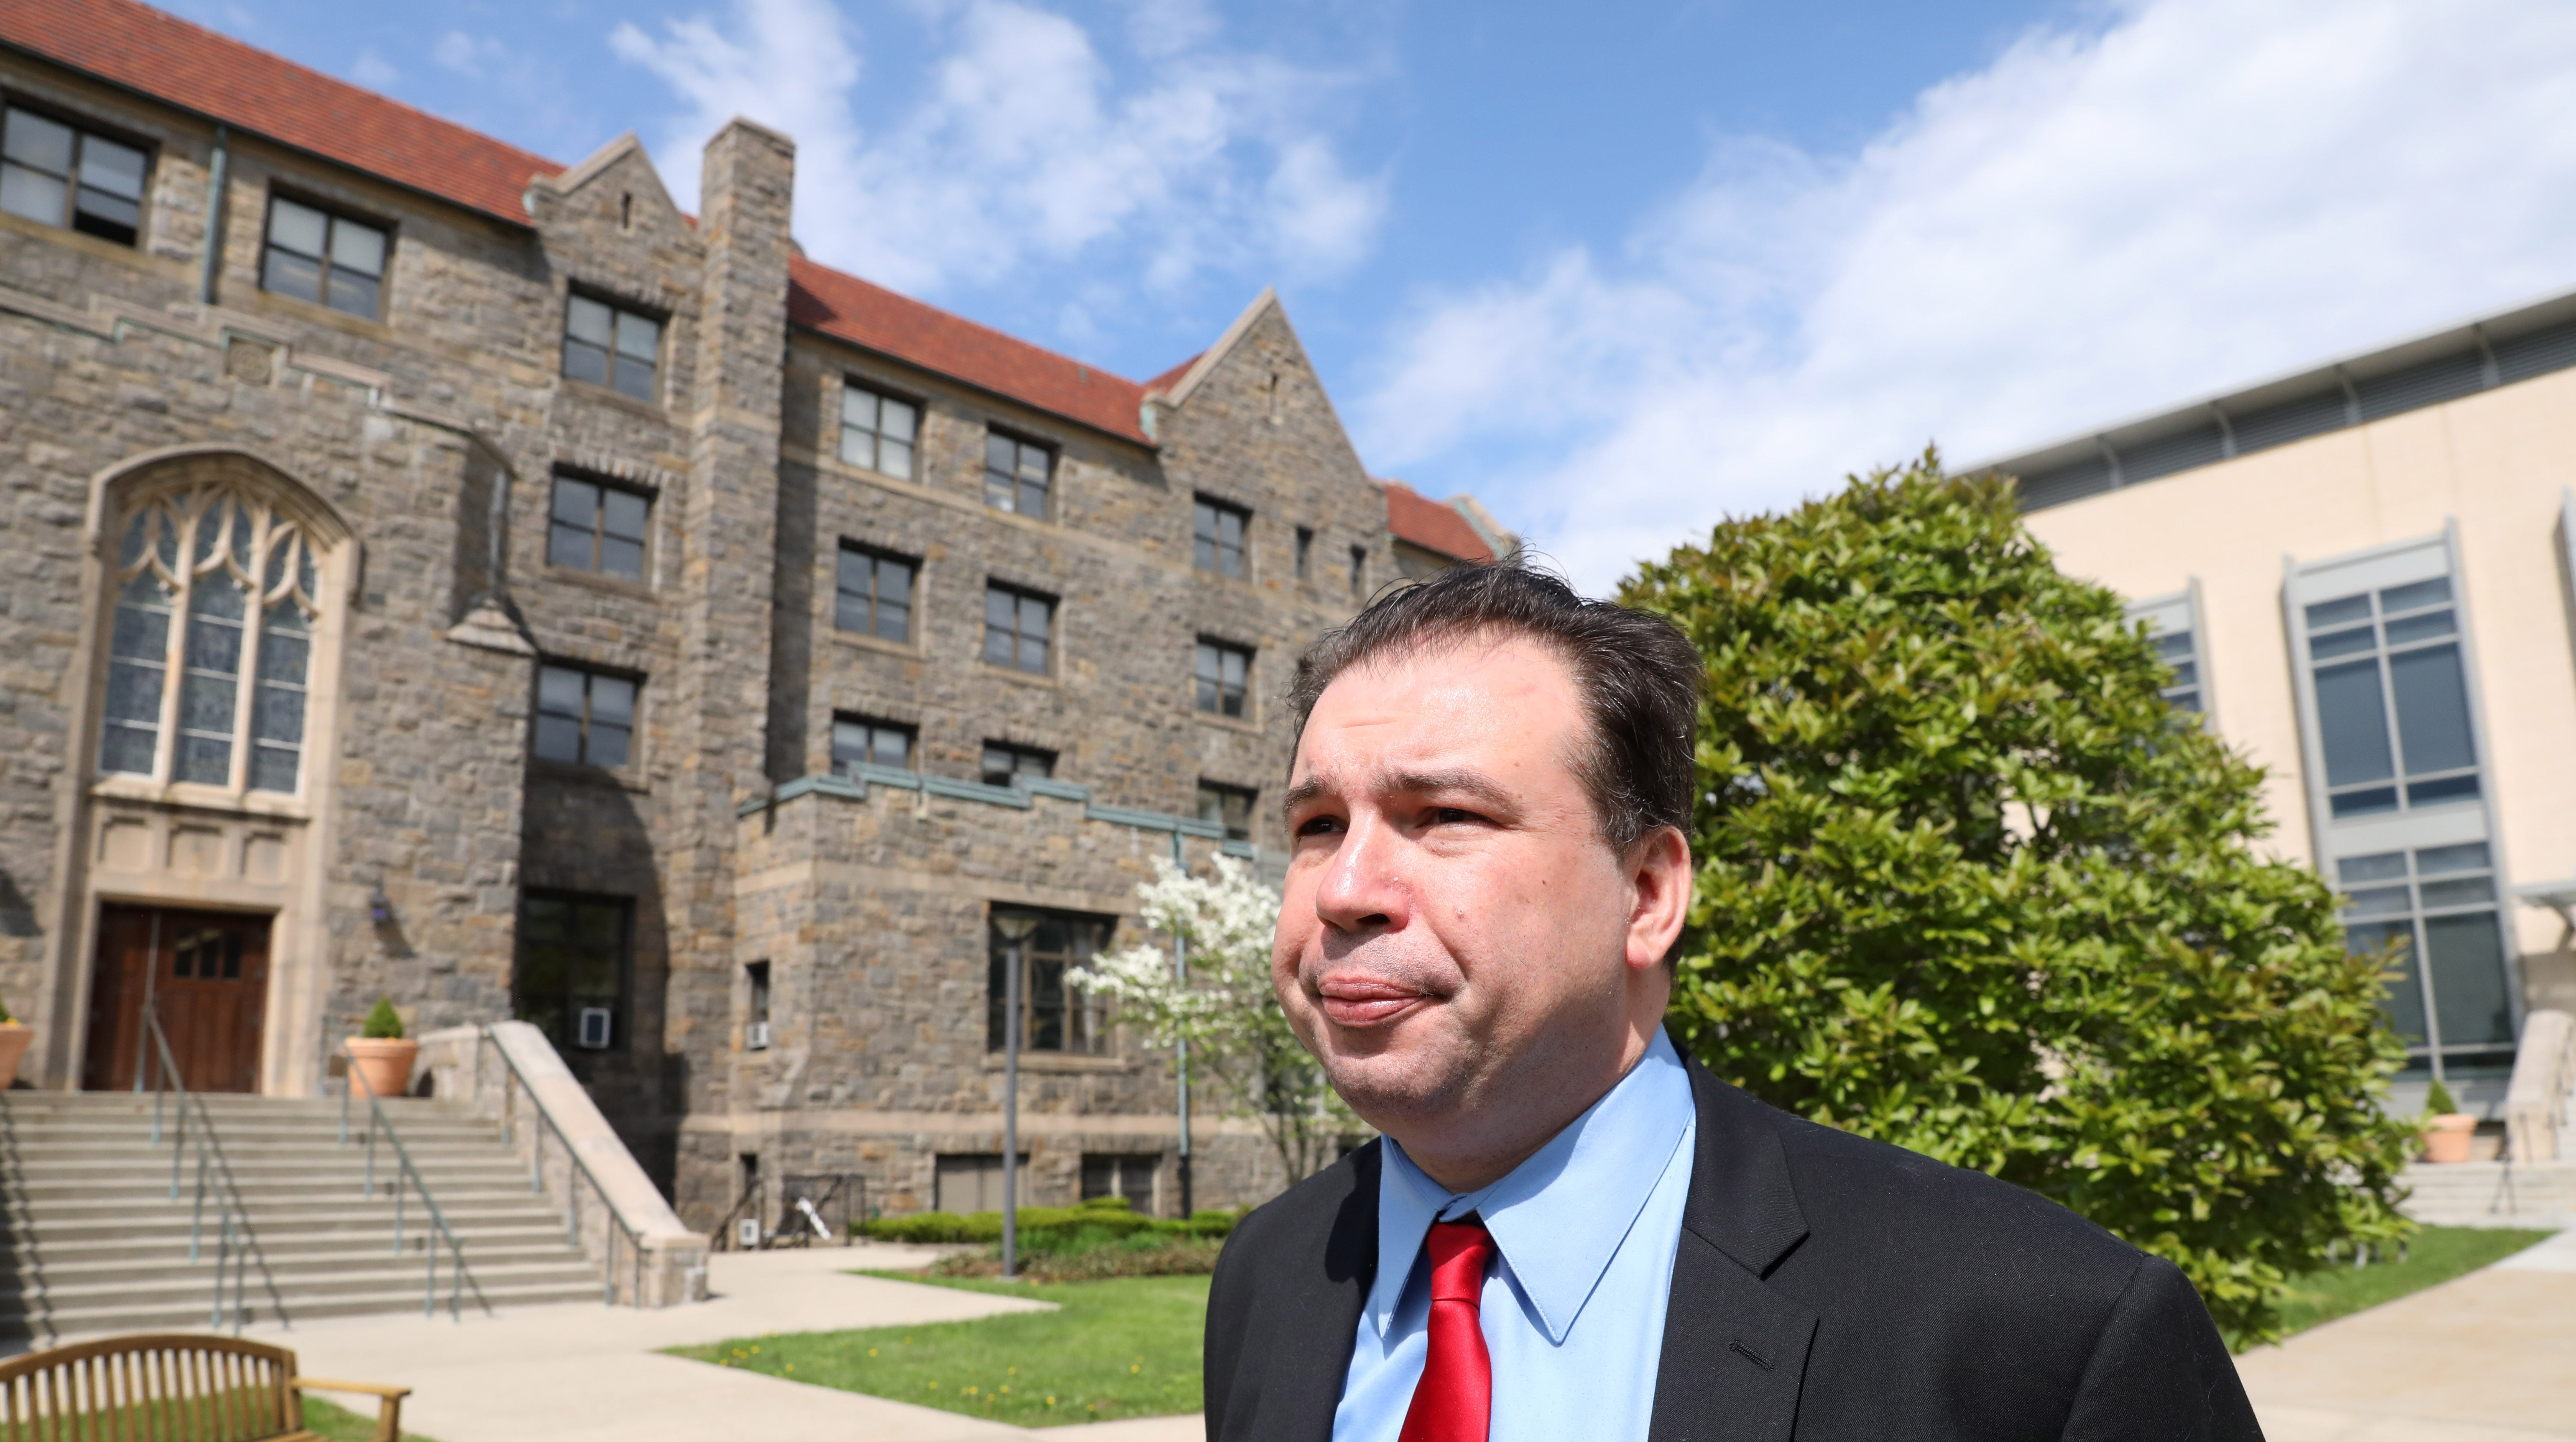 Jeffrey Deskovic, 45, talks about his experience before taking the final test for his law degree at Pace University Elisabeth Haub School of Law in White Plains May 8, 2019. Deskovic was wrongfully convicted of rape/murder of his Peekskill High School classmate. He spent 16 years in prison before he finally got permission to re-run DNA and it matched a convicted killer.